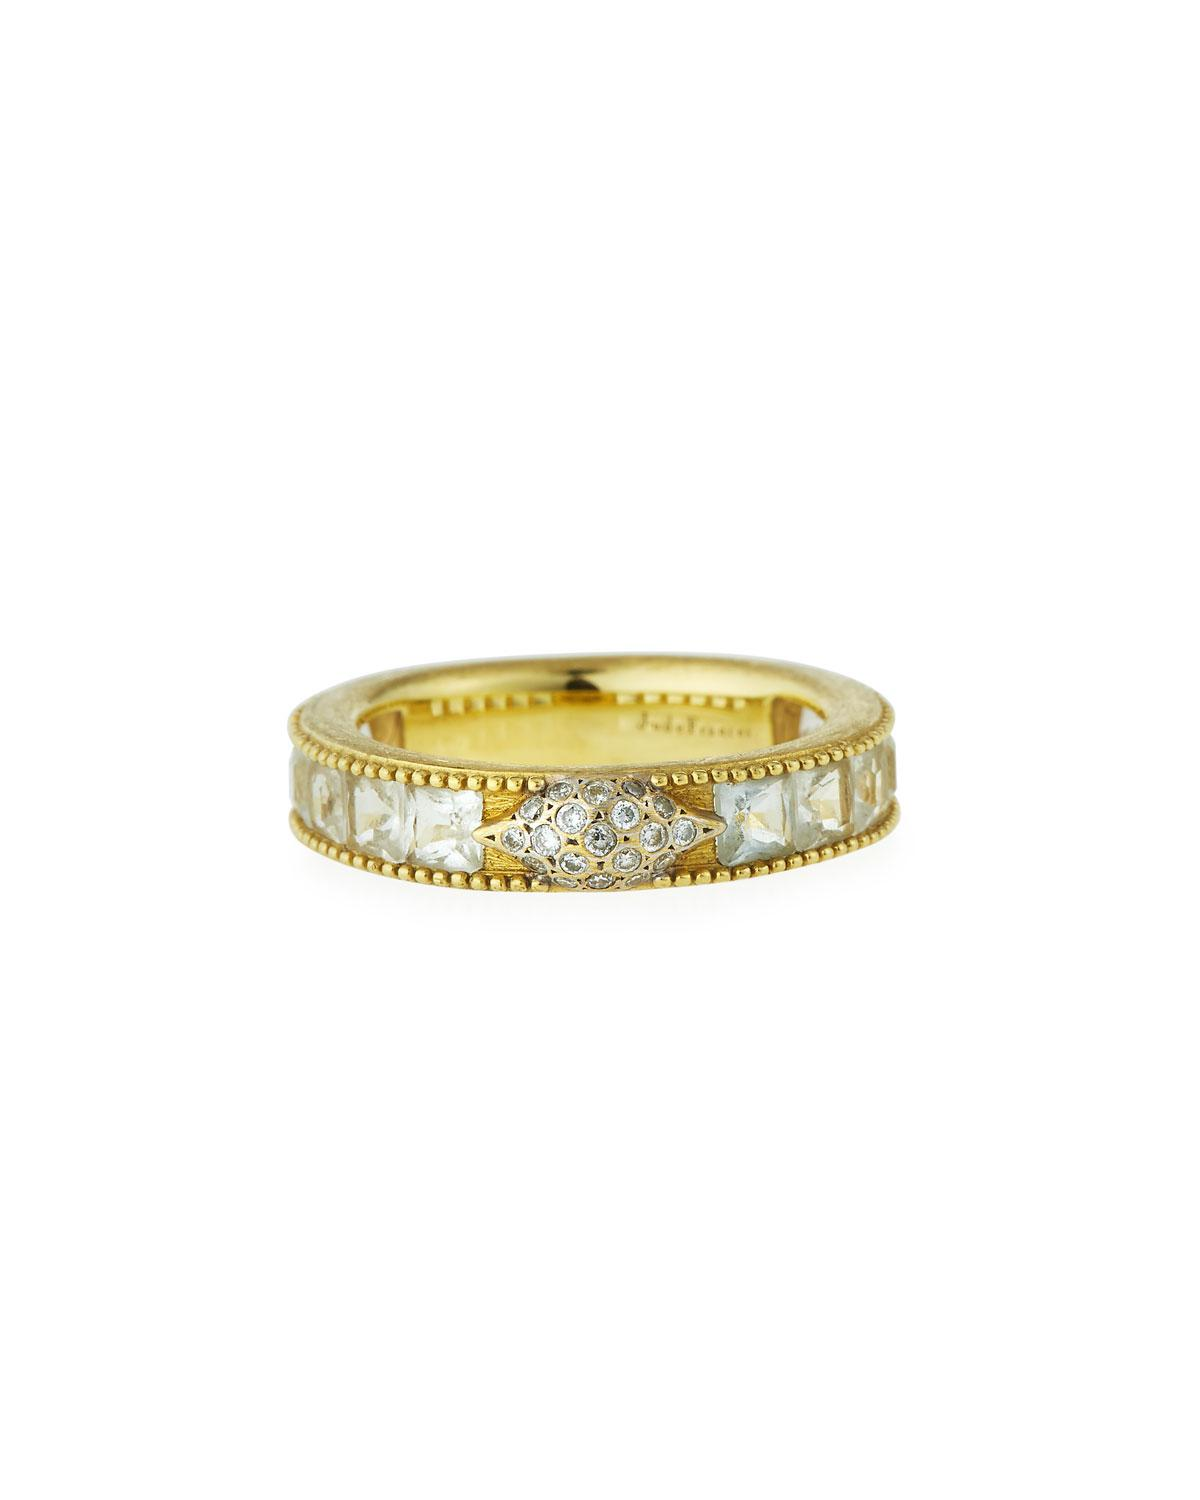 Jude Frances Lisse Moonstone & Diamond Band Ring in 18k Yellow Gold yiD6A